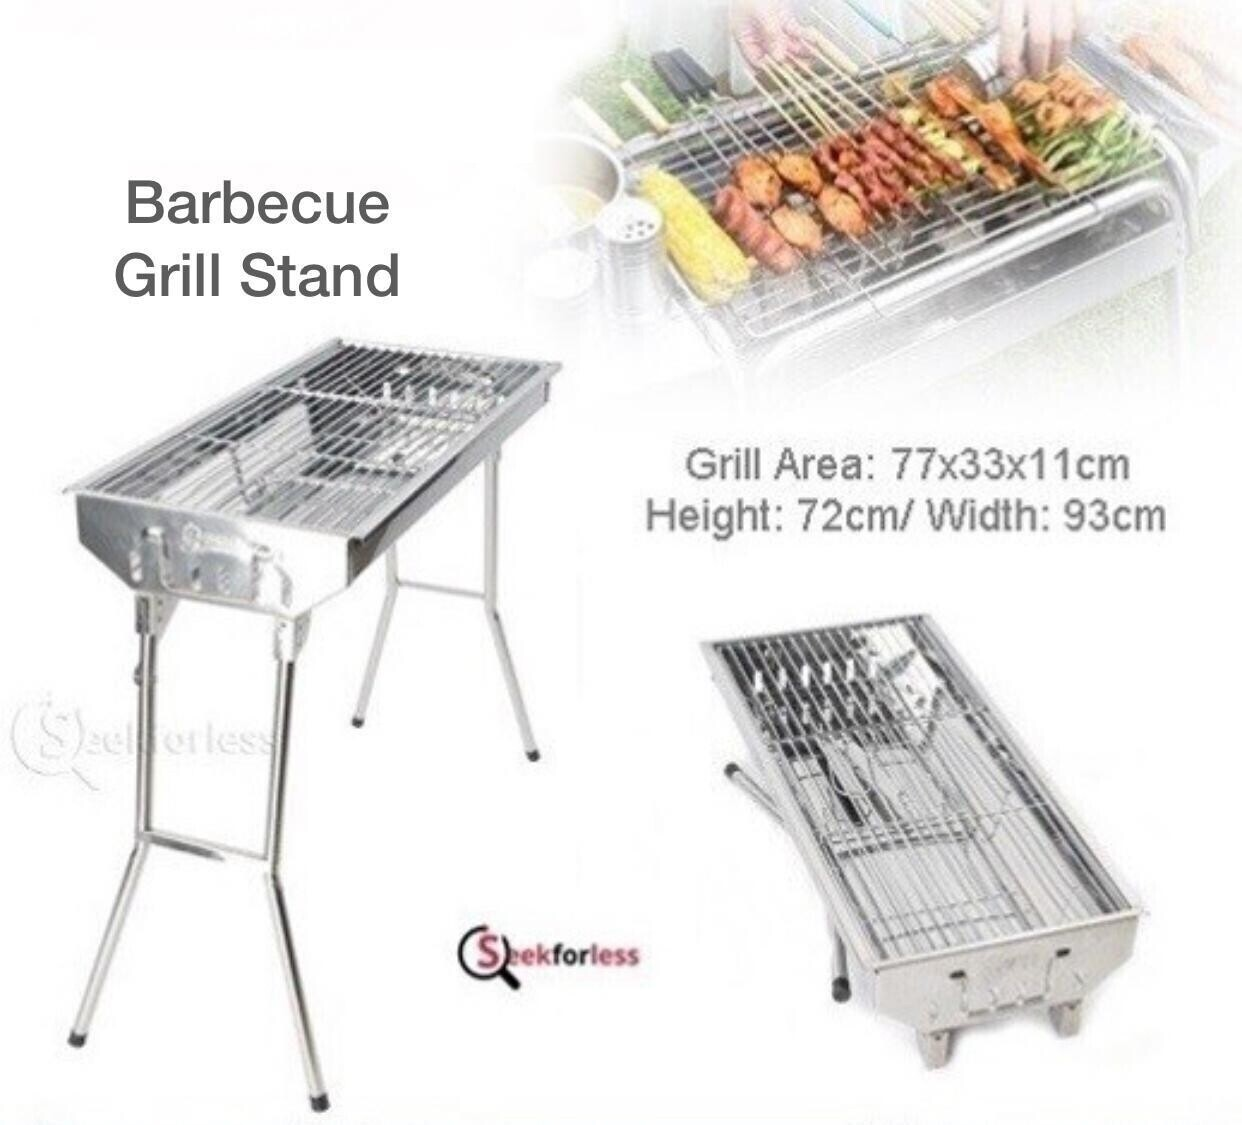 Barbecue Grill Stand